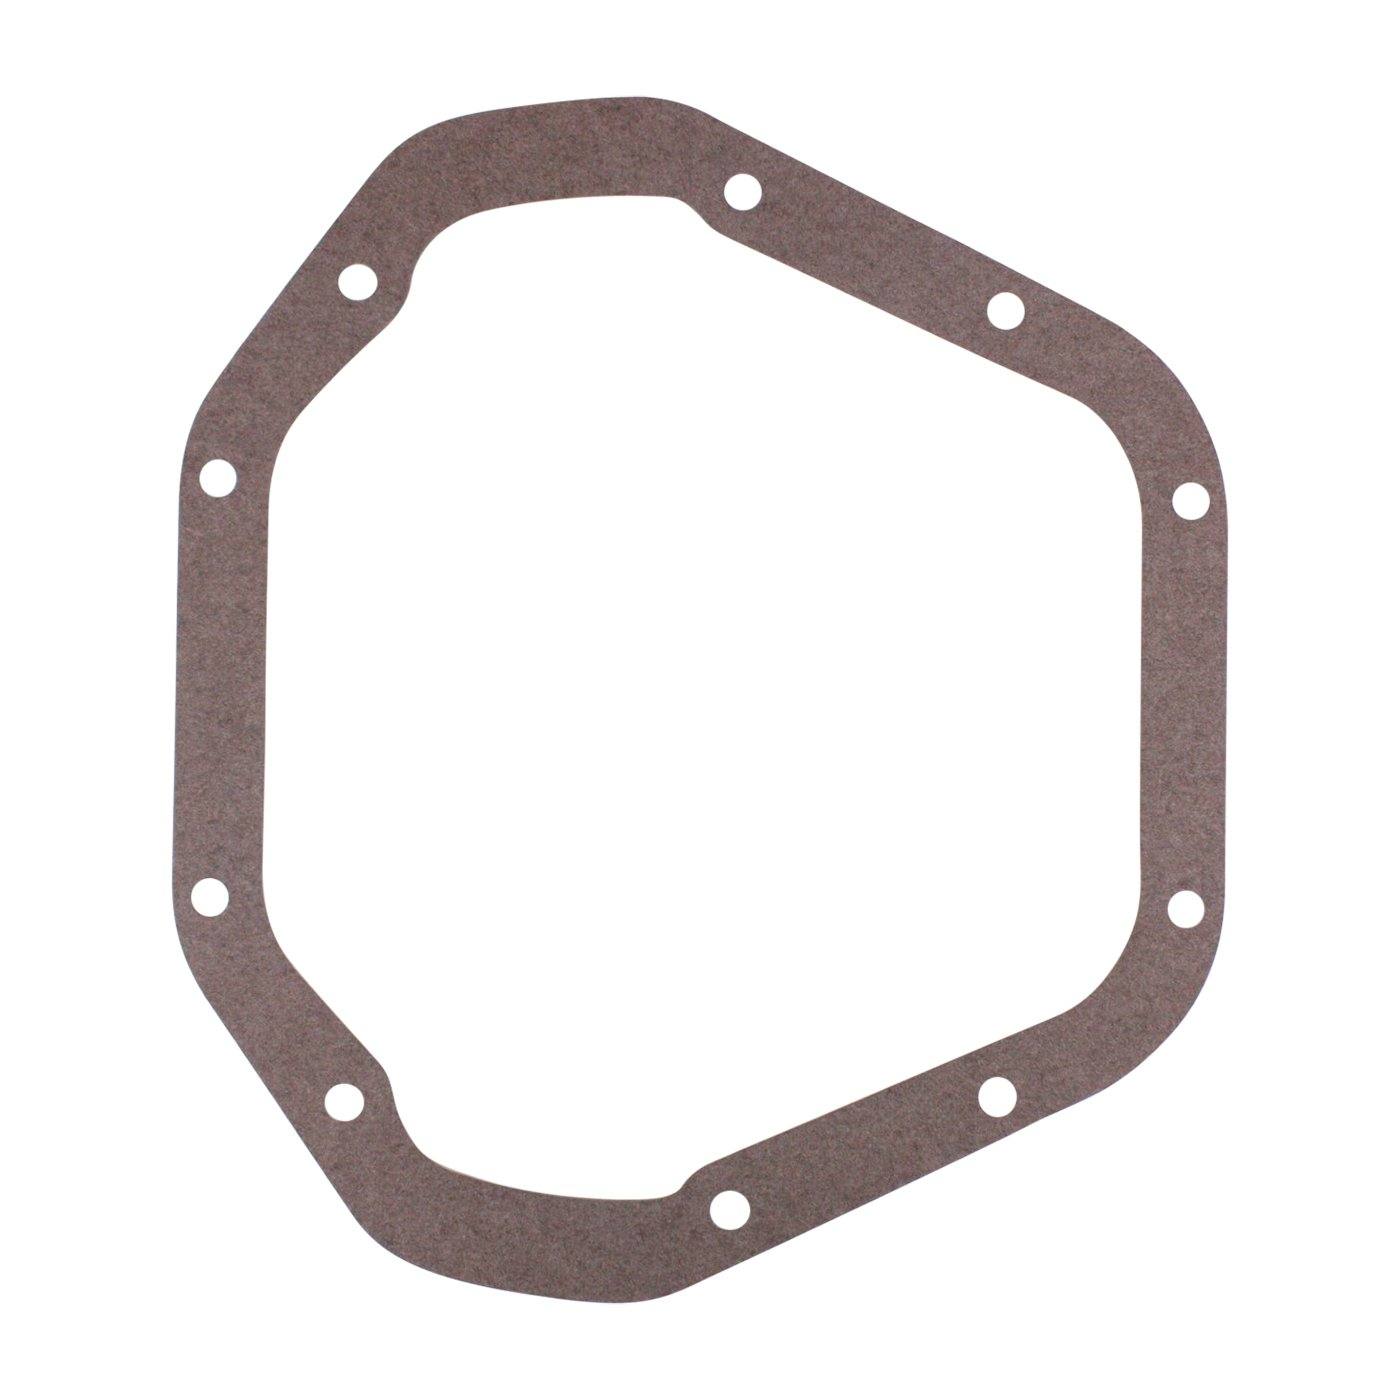 Yukon (YCGD60-D70) Replacement Cover Gasket for Dana 60/70 Differential